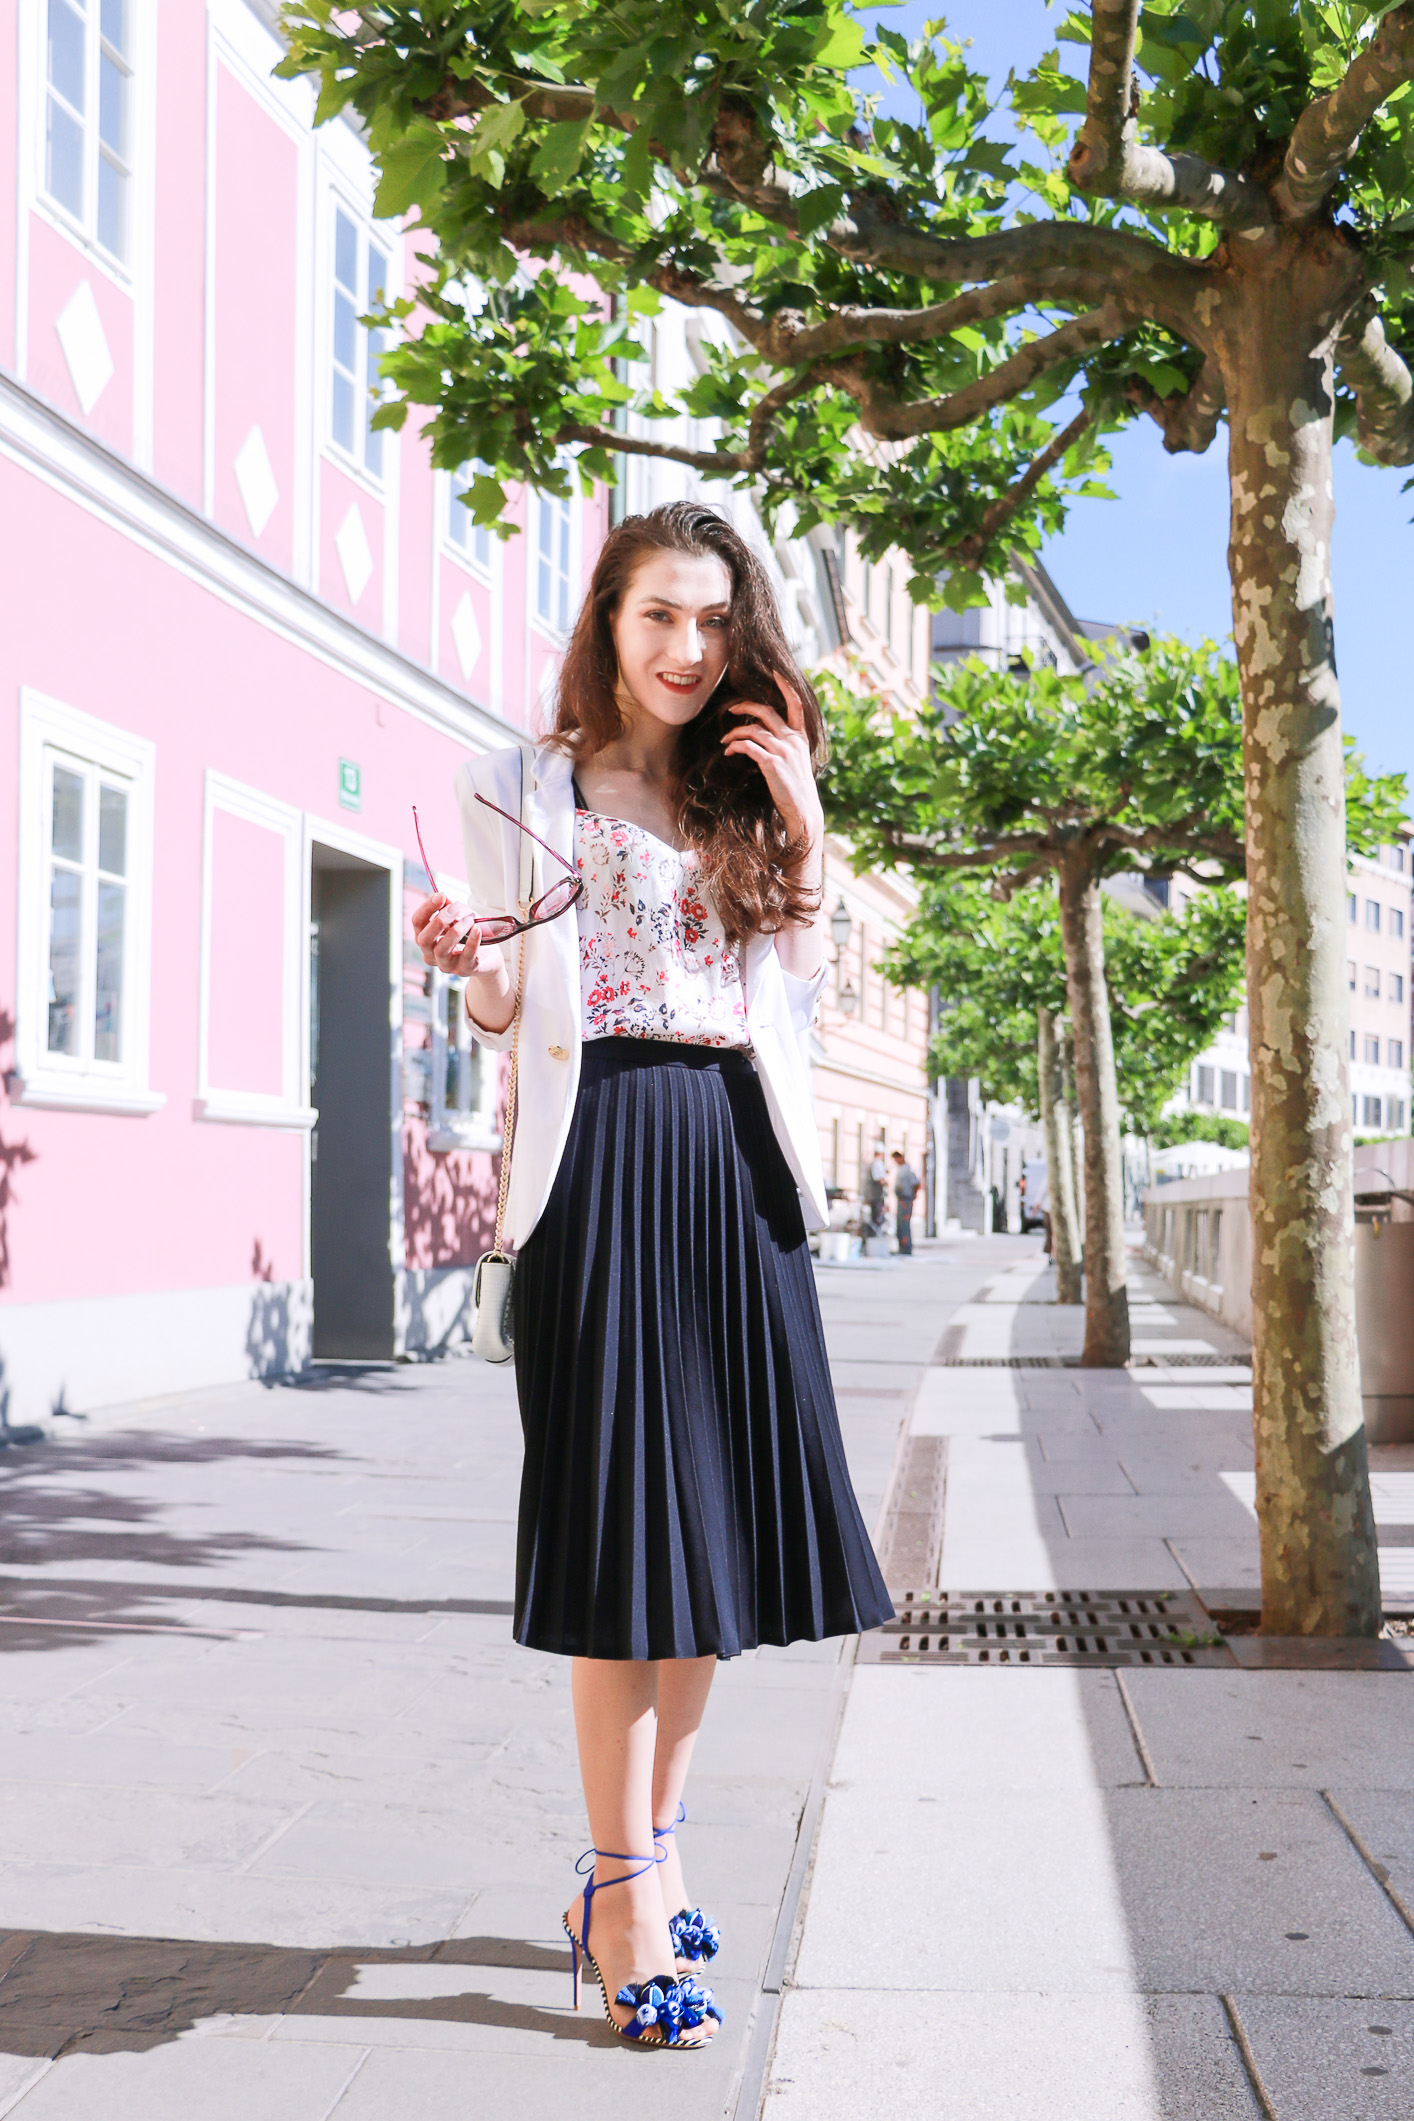 Fashion blogger Veronika Lipar of Brunette From Wall Street sharing how to wear black vintage midi pleated skirt, blue Tropicana tasseled beaded sandals from Aquazzura, floral top, and white blazer for a chic summer look